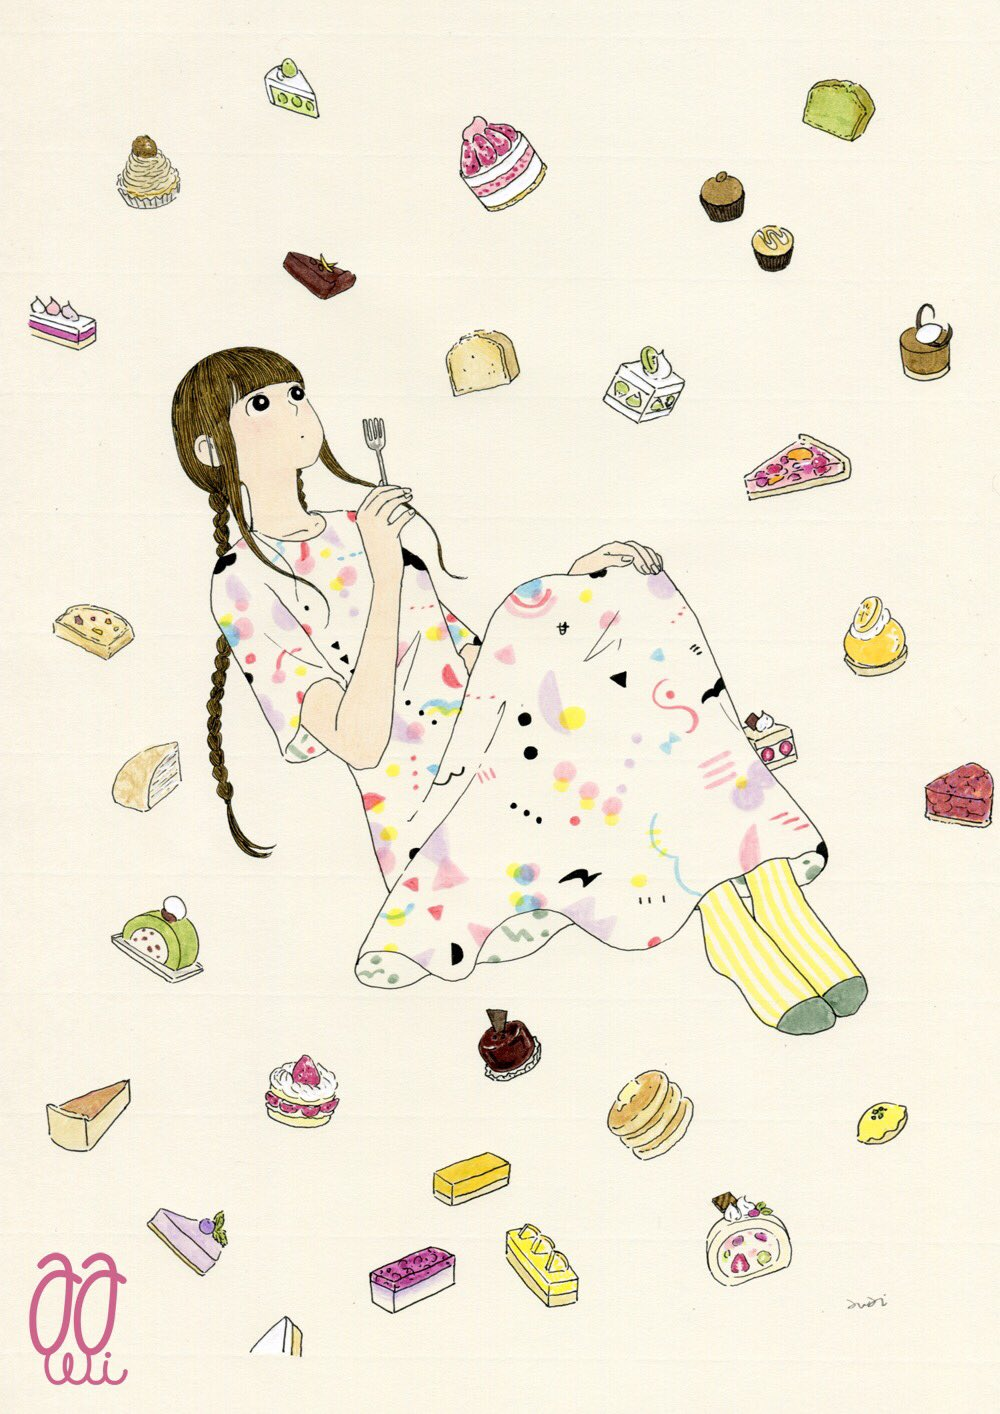 1girl awai880 bangs black_eyes blunt_bangs braid bright_pupils brown_hair cake dress food fork highres holding holding_fork knees_up long_hair original pancake pie print_dress short_sleeves signature socks solo stack_of_pancakes strawberry_shortcake twin_braids white_pupils wide_shot